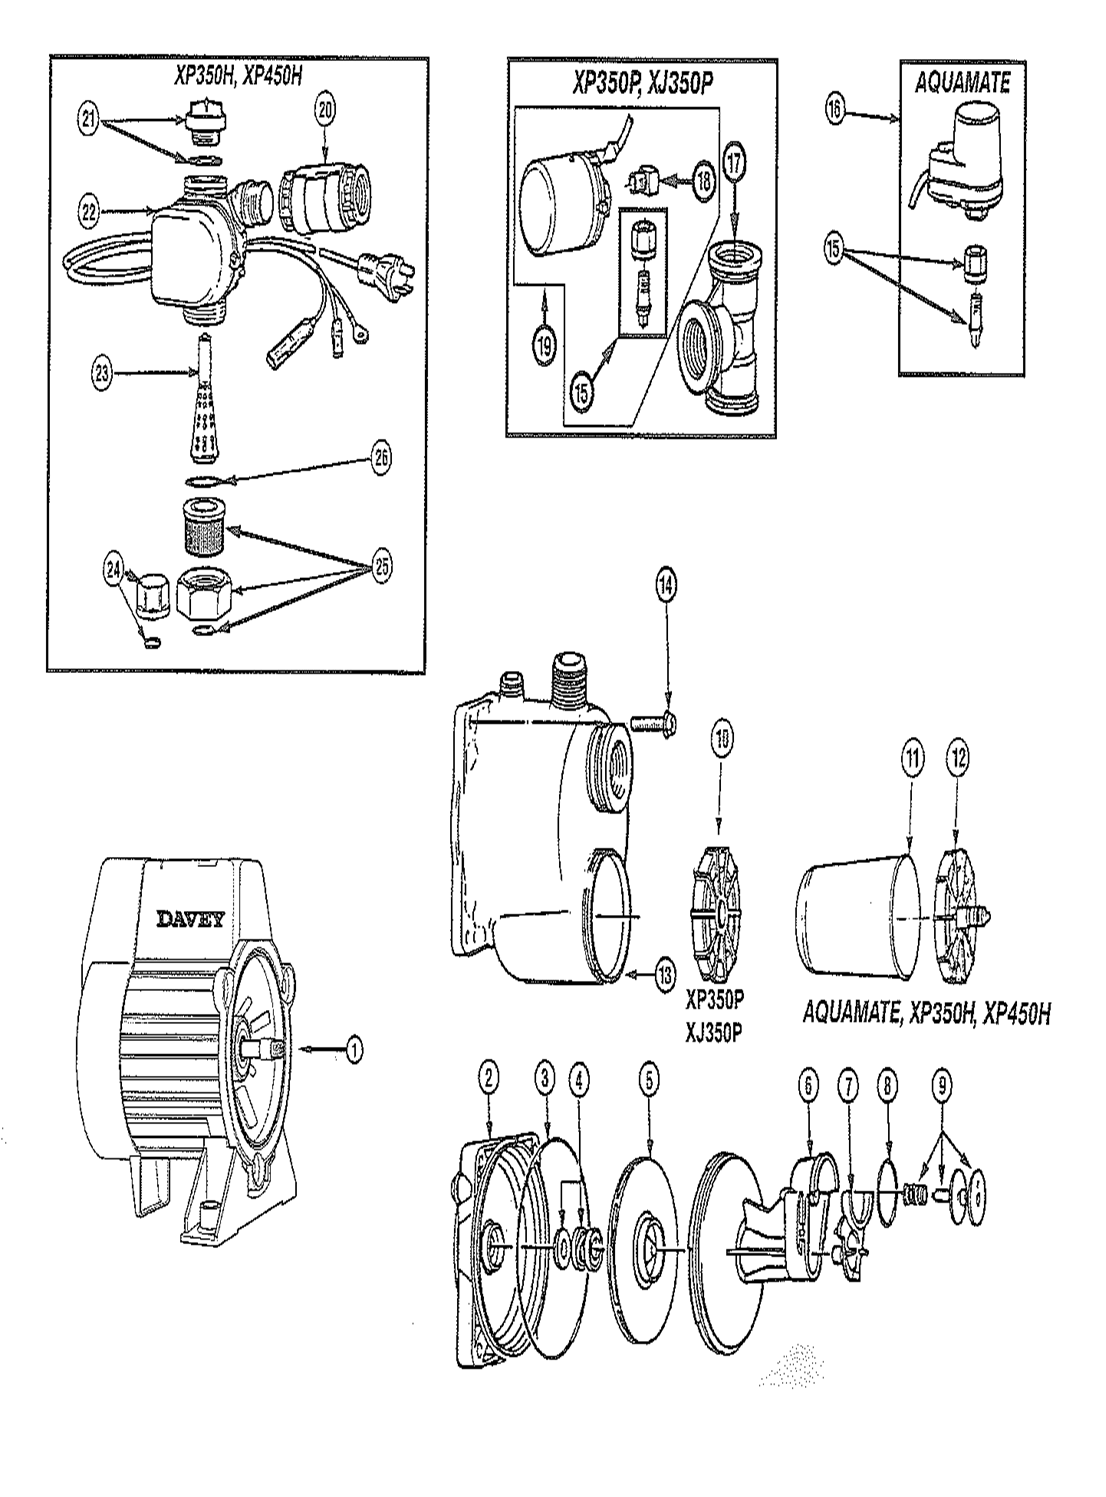 davey pump spare parts list